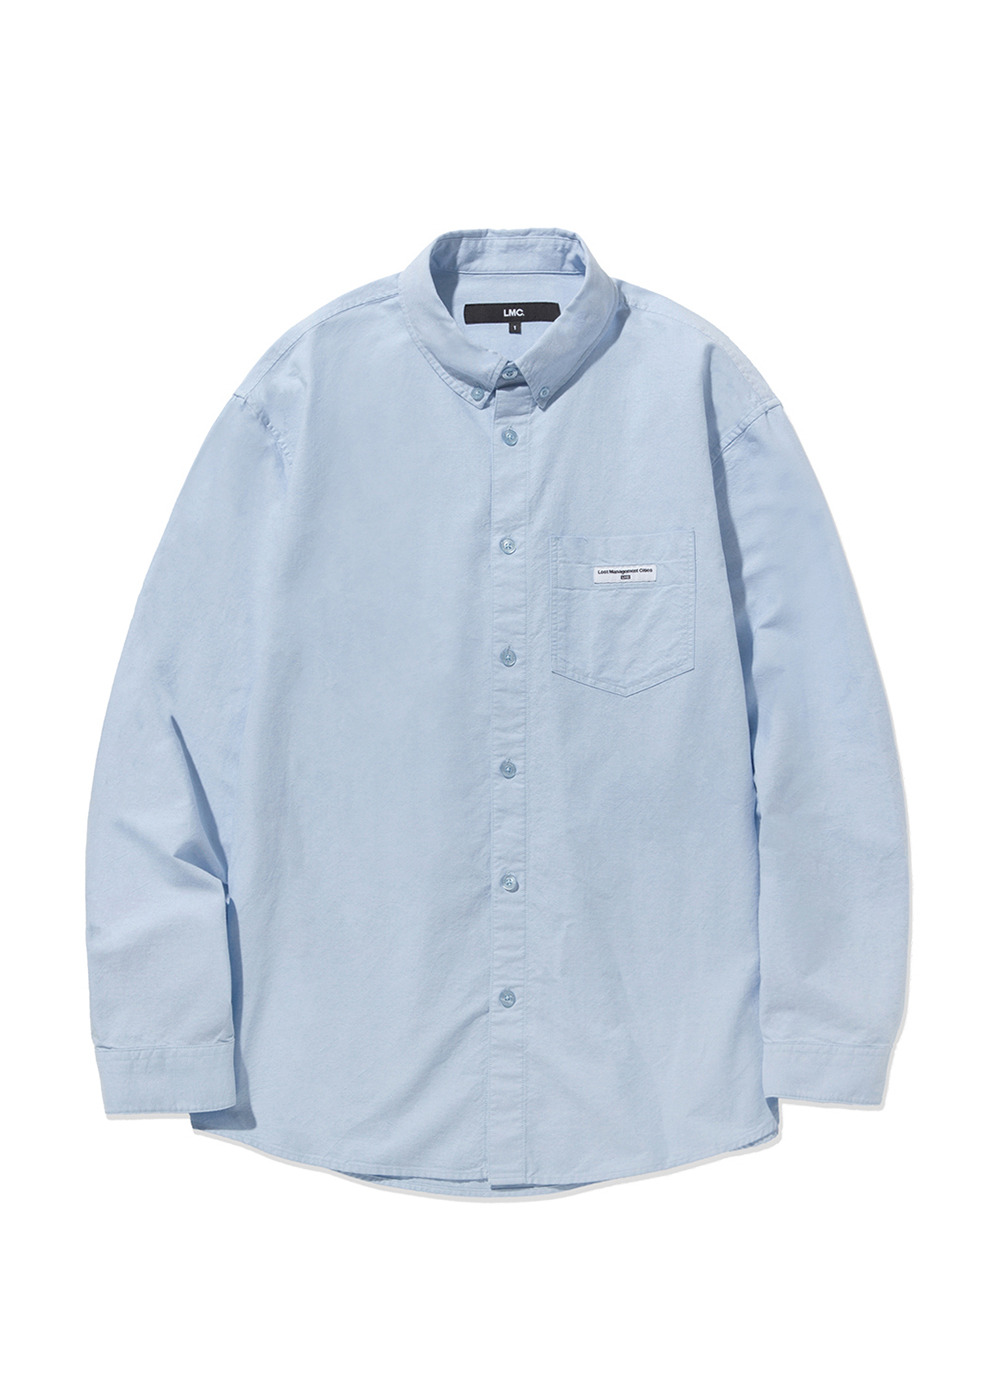 LMC BASIC SHIRT sky blue